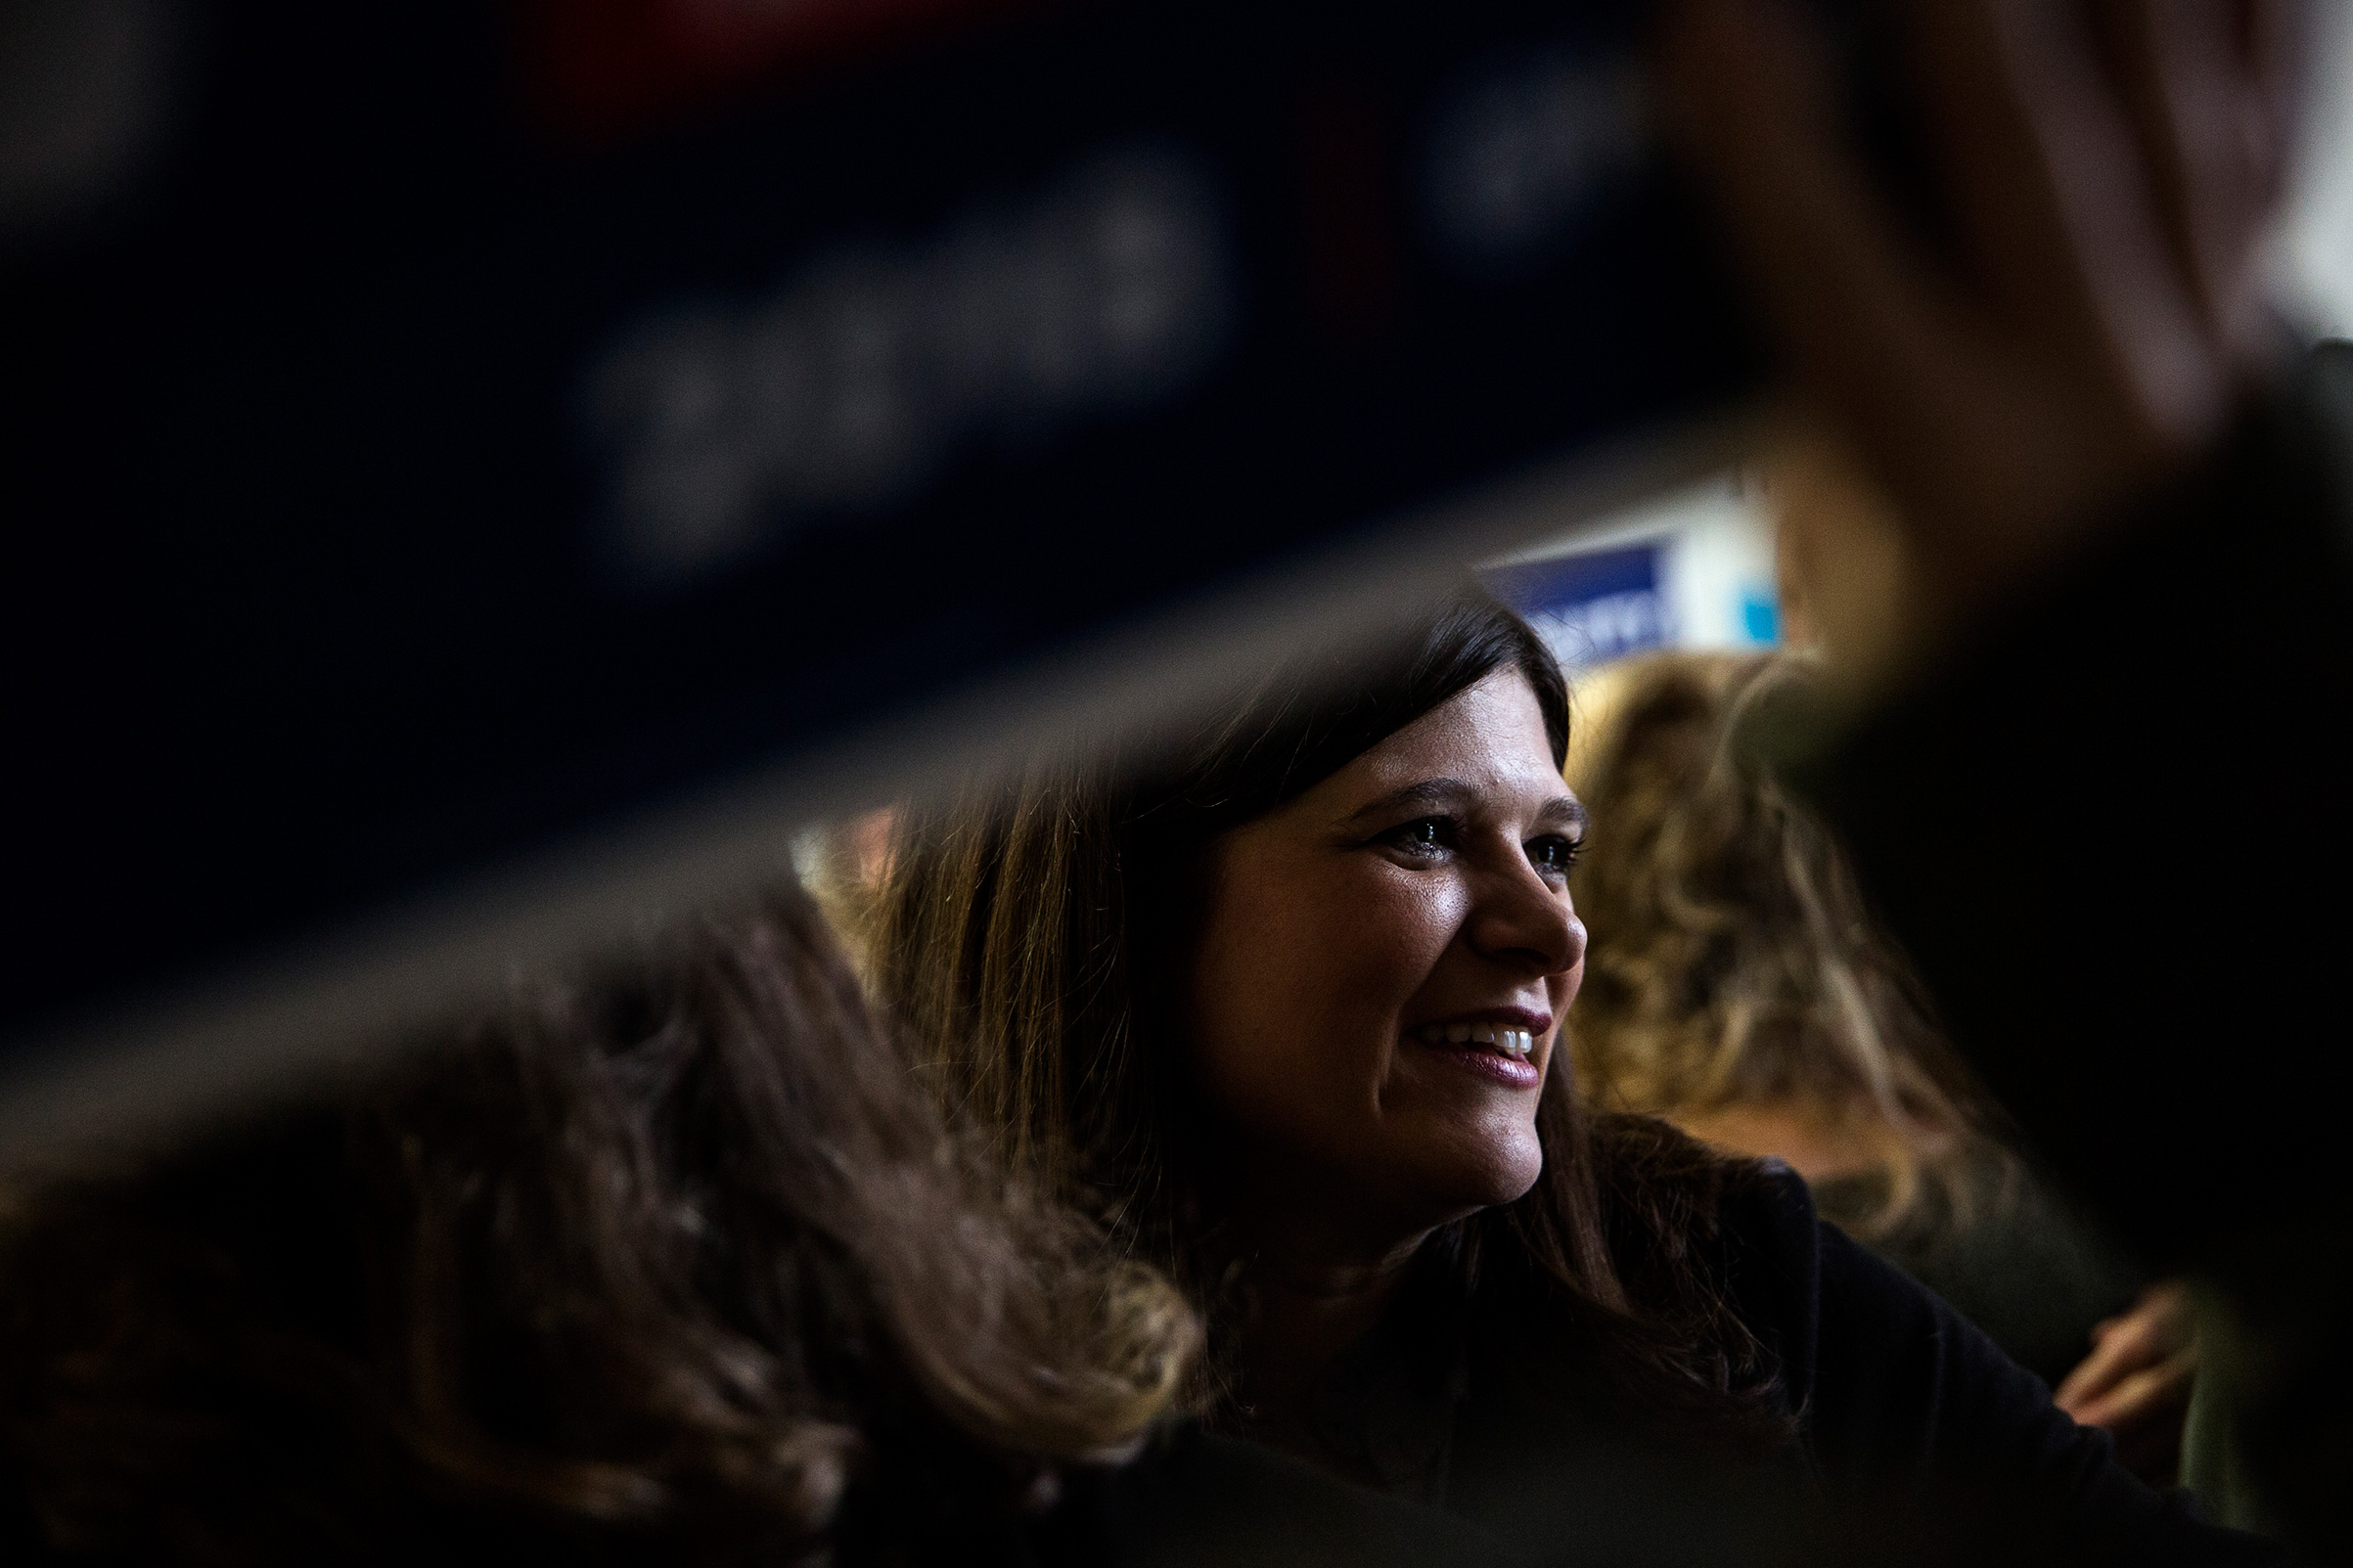 Democratic candidate for Michigan's 11th Congressional District Haley Stevens talks to supporters and volunteers while launching election day canvassing at her Field Office in Troy, Mich, on Nov. 6, 2018.